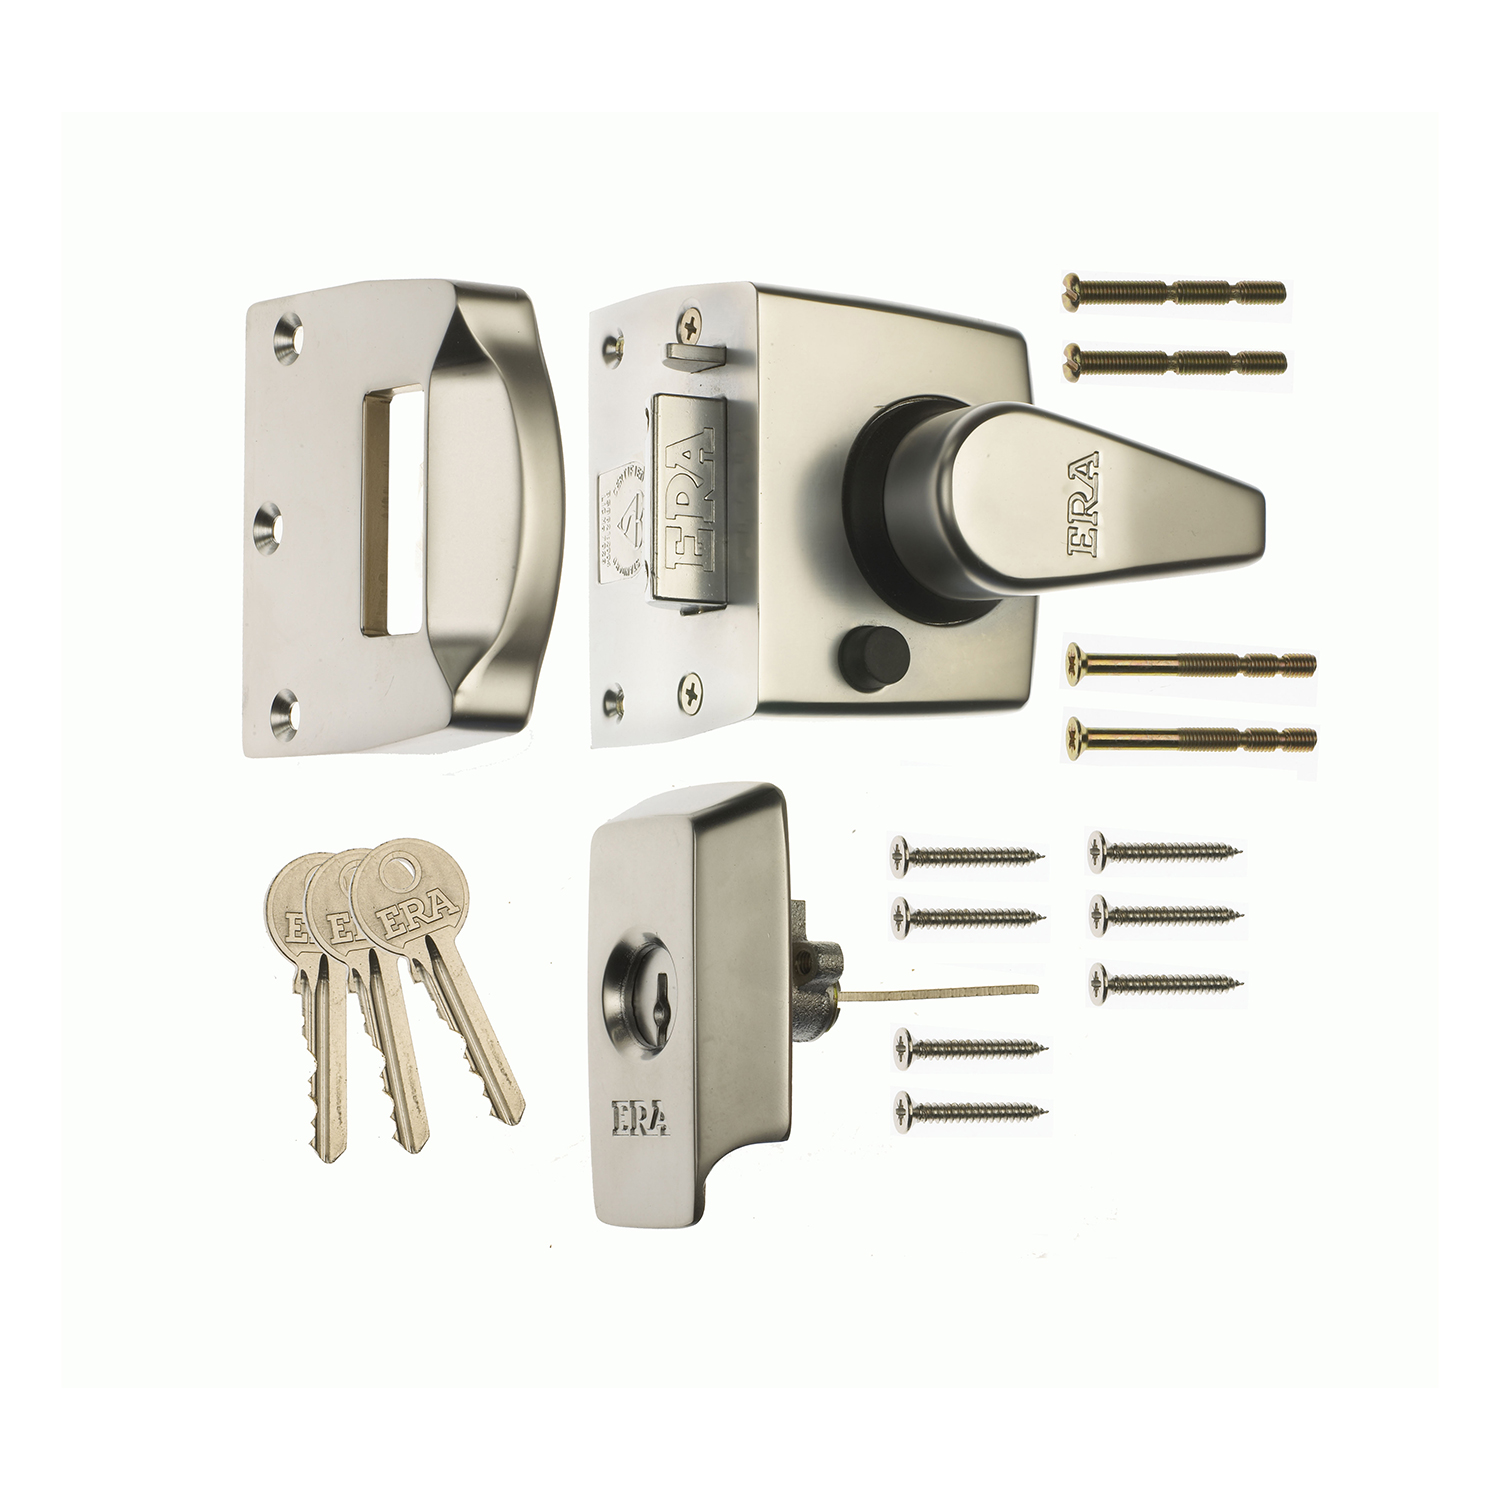 British Standard Keyless Egress Nightlatch Door Lock